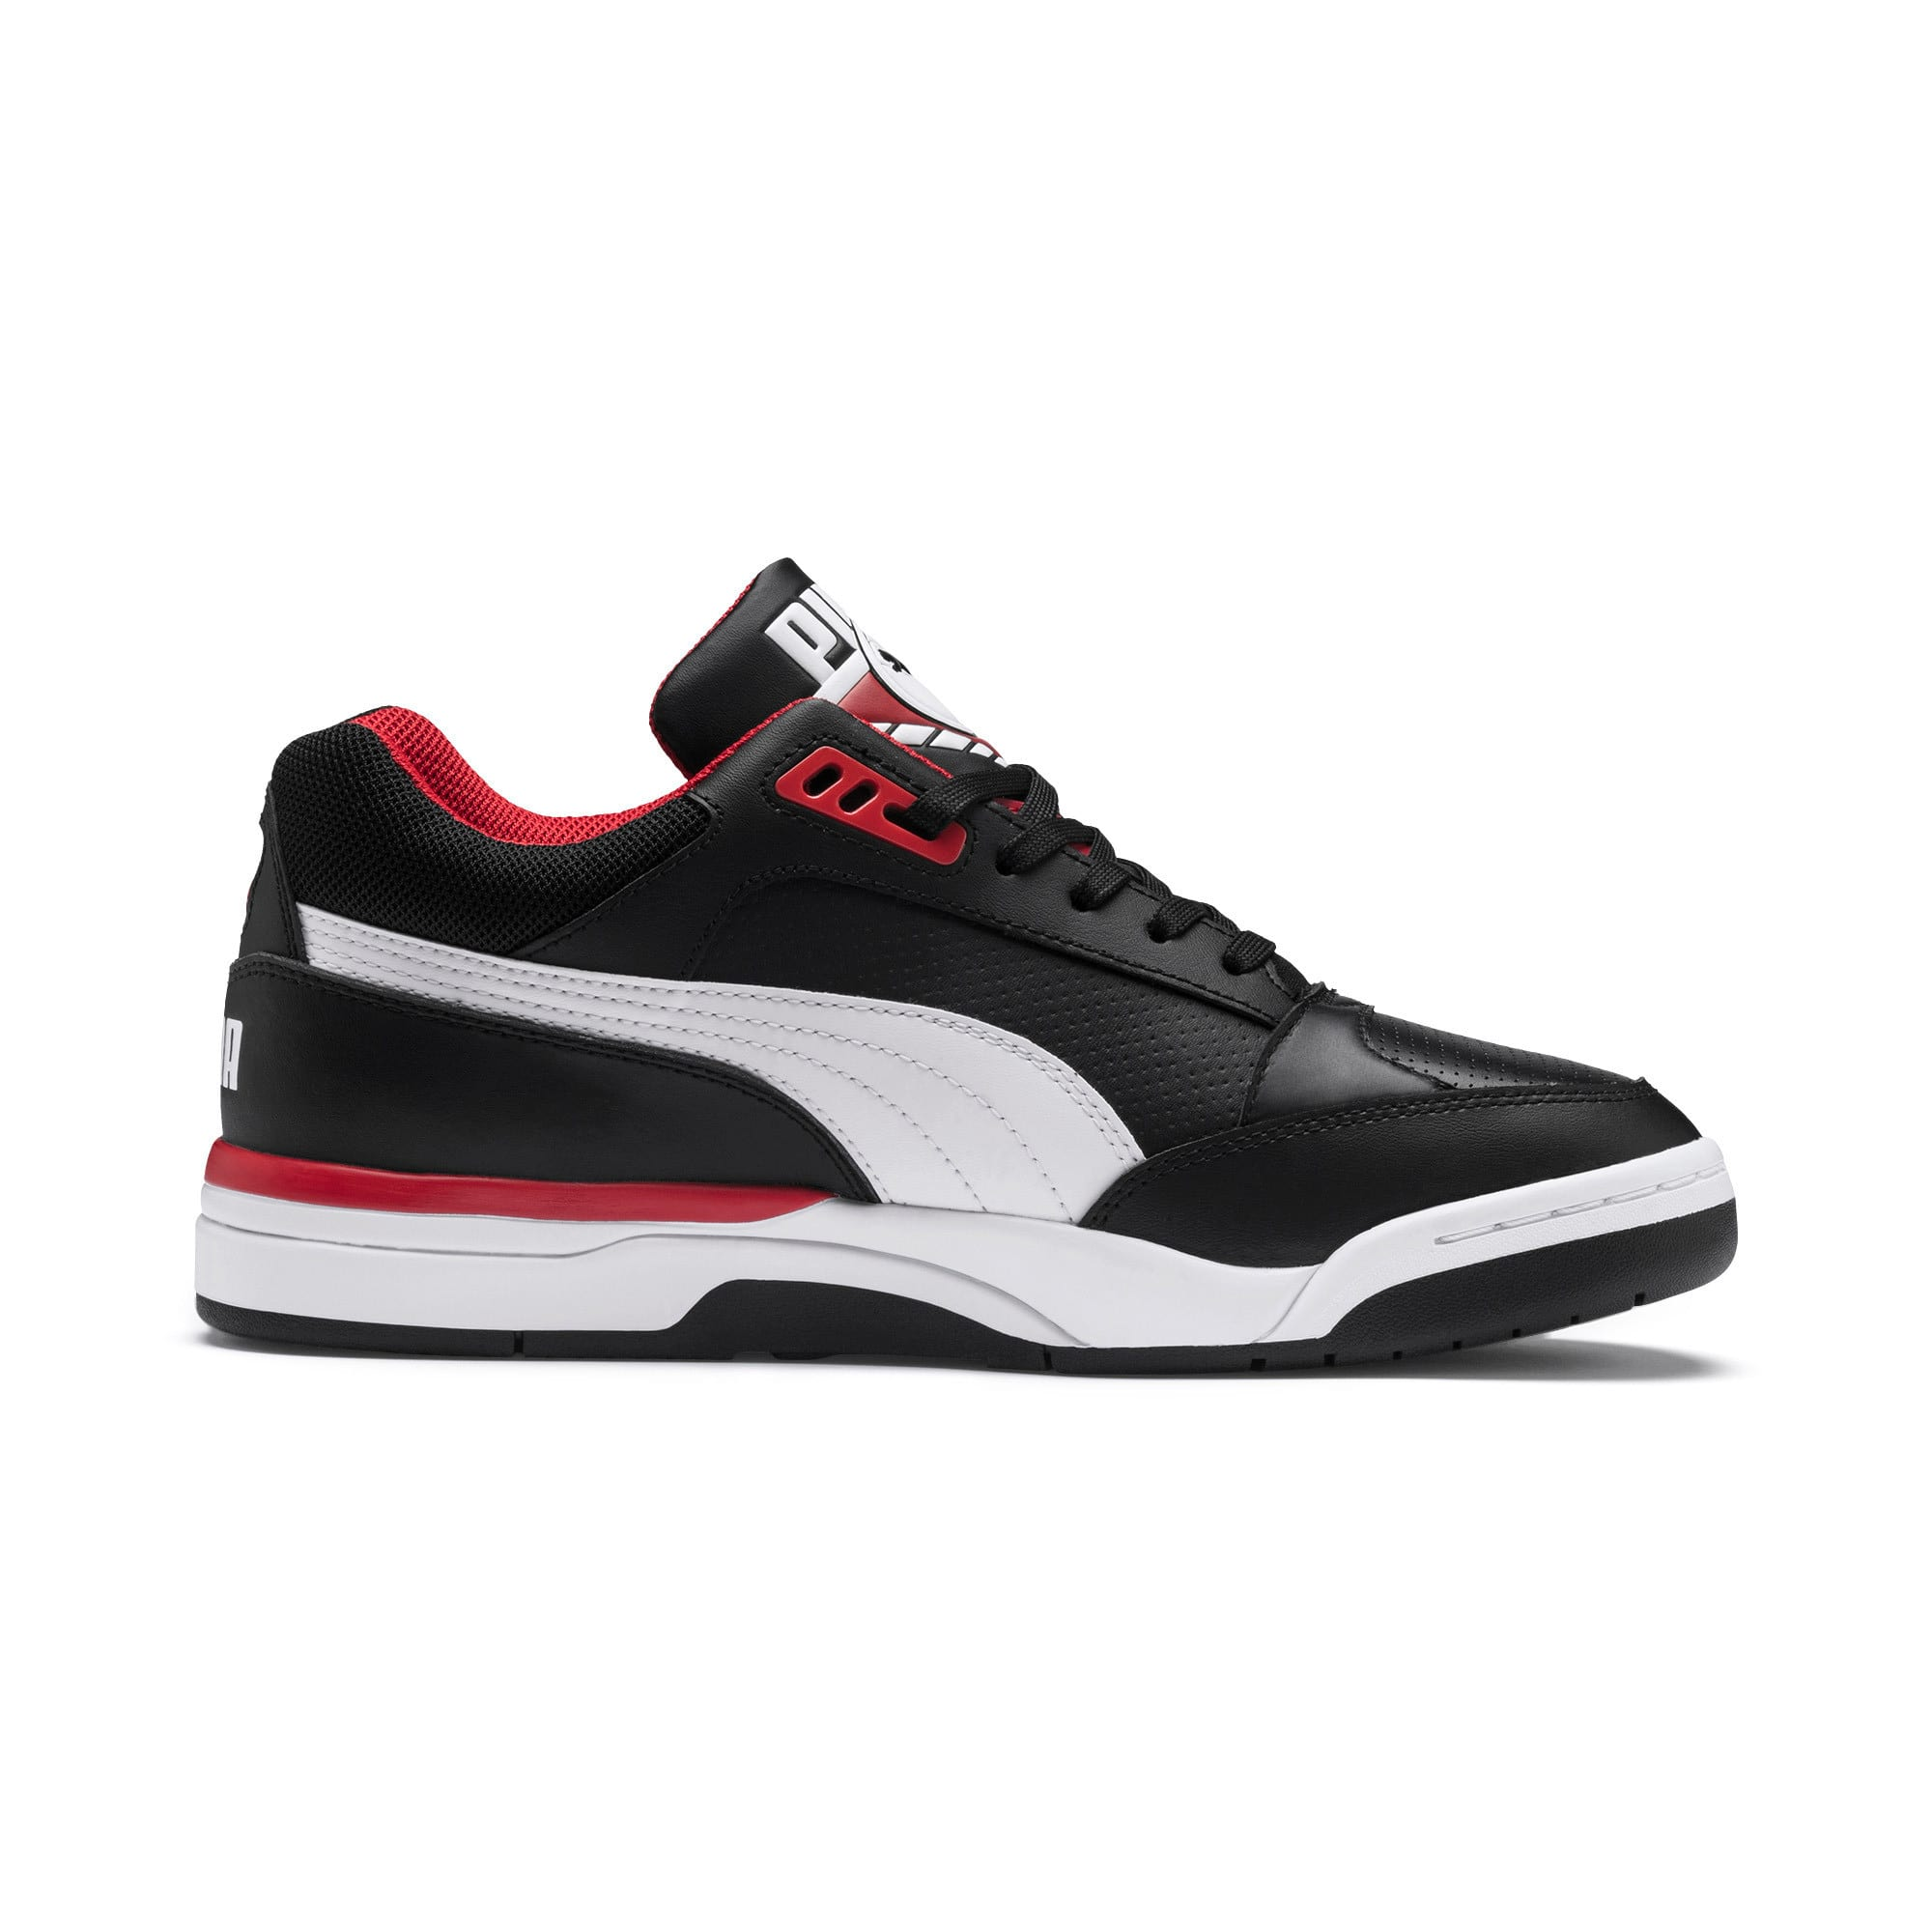 Thumbnail 5 of Palace Guard Men's Basketball Trainers, Puma Black-Puma White-red, medium